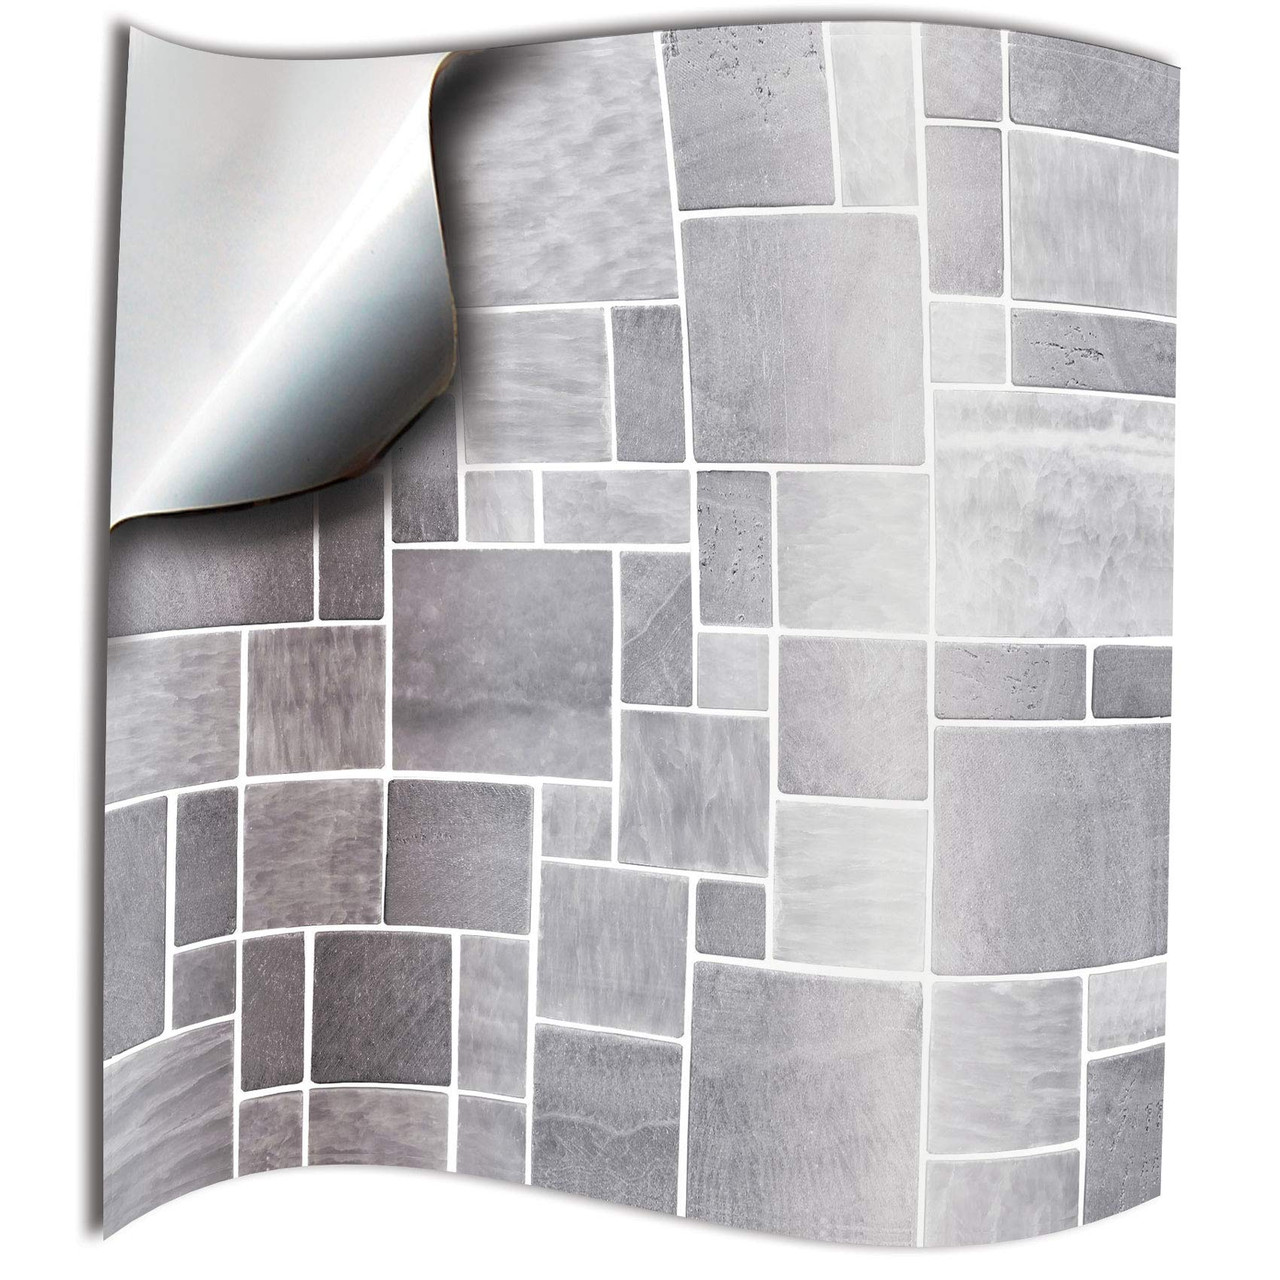 24pc Light Grey Kitchen Tile Stickers For 100mm Tp31 4 Inch Square Tiles Directly From Tile Style Decals No Middleman 4 X4 Pack Of 24